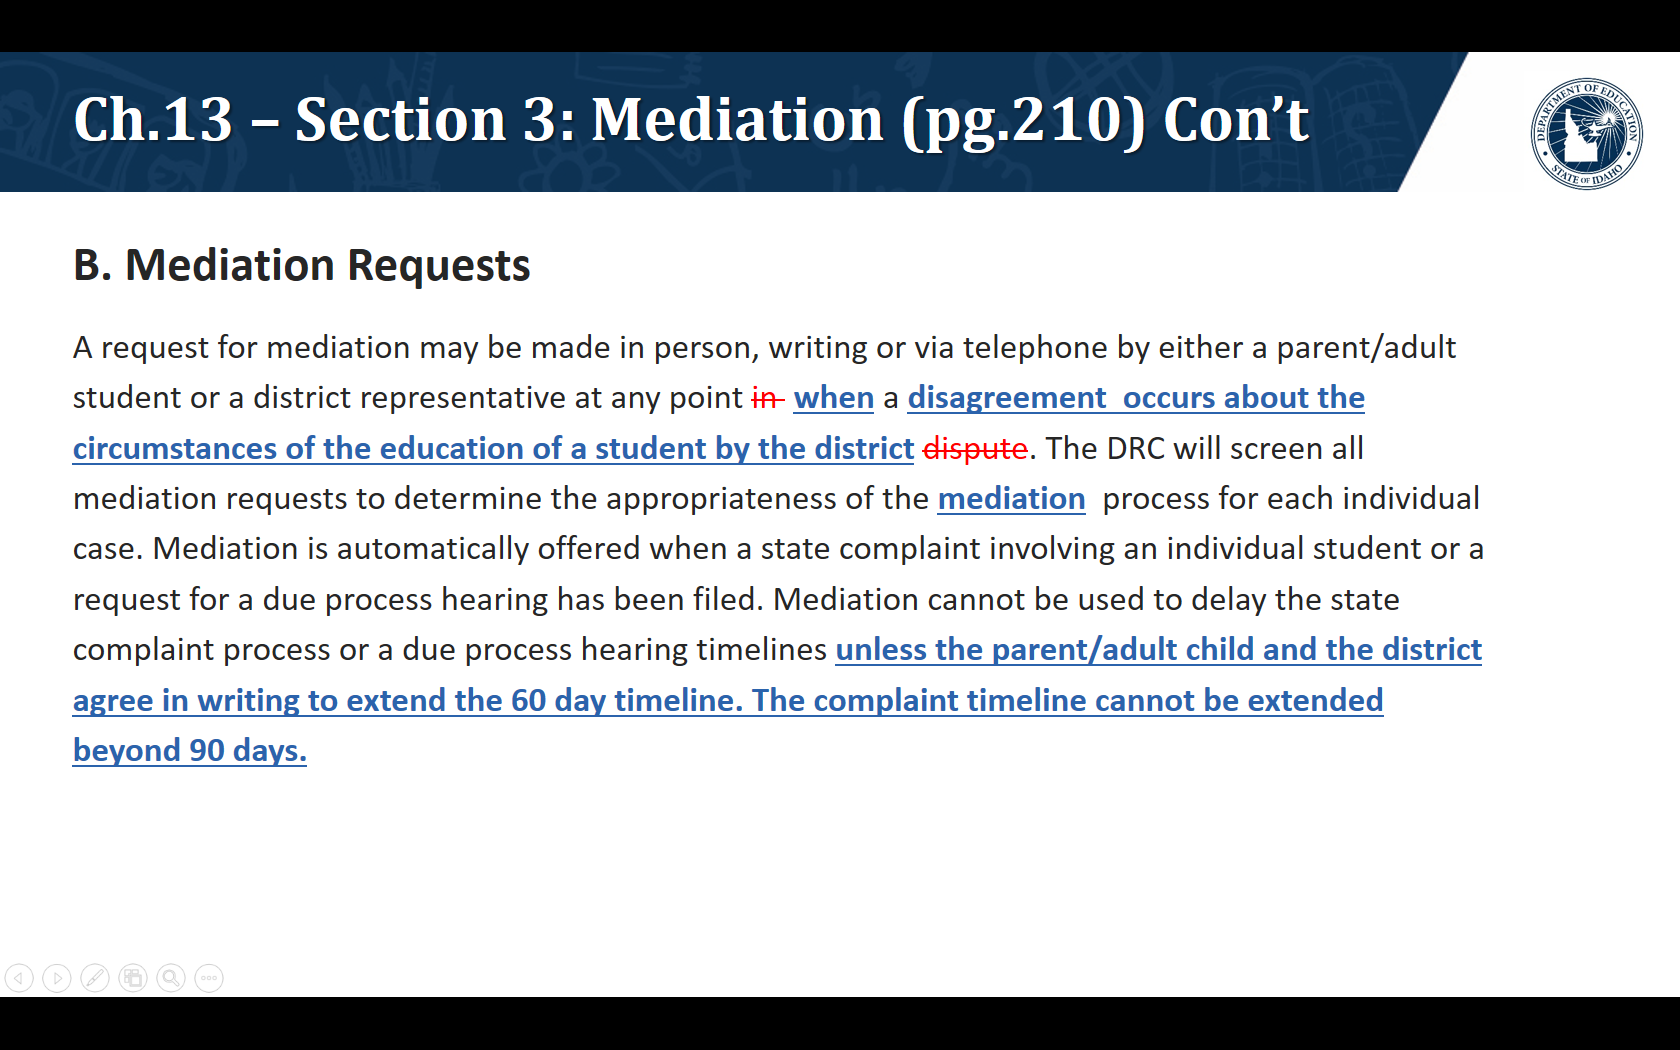 B. Mediation Requests. A request for mediation may be made in person, writing or via telephone by either a parent/adult student or a district representative at any point when a disagreement  occurs about the circumstances of the education of a student by the district. The DRC will screen all mediation requests to determine the appropriateness of the mediation  process for each individual case. Mediation is automatically offered when a state complaint involving an individual student or a request for a due process hearing has been filed. Mediation cannot be used to delay the state complaint process or a due process hearing timelines unless the parent/adult child and the district agree in writing to extend the 60 day timeline. The complaint timeline cannot be extended beyond 90 days.